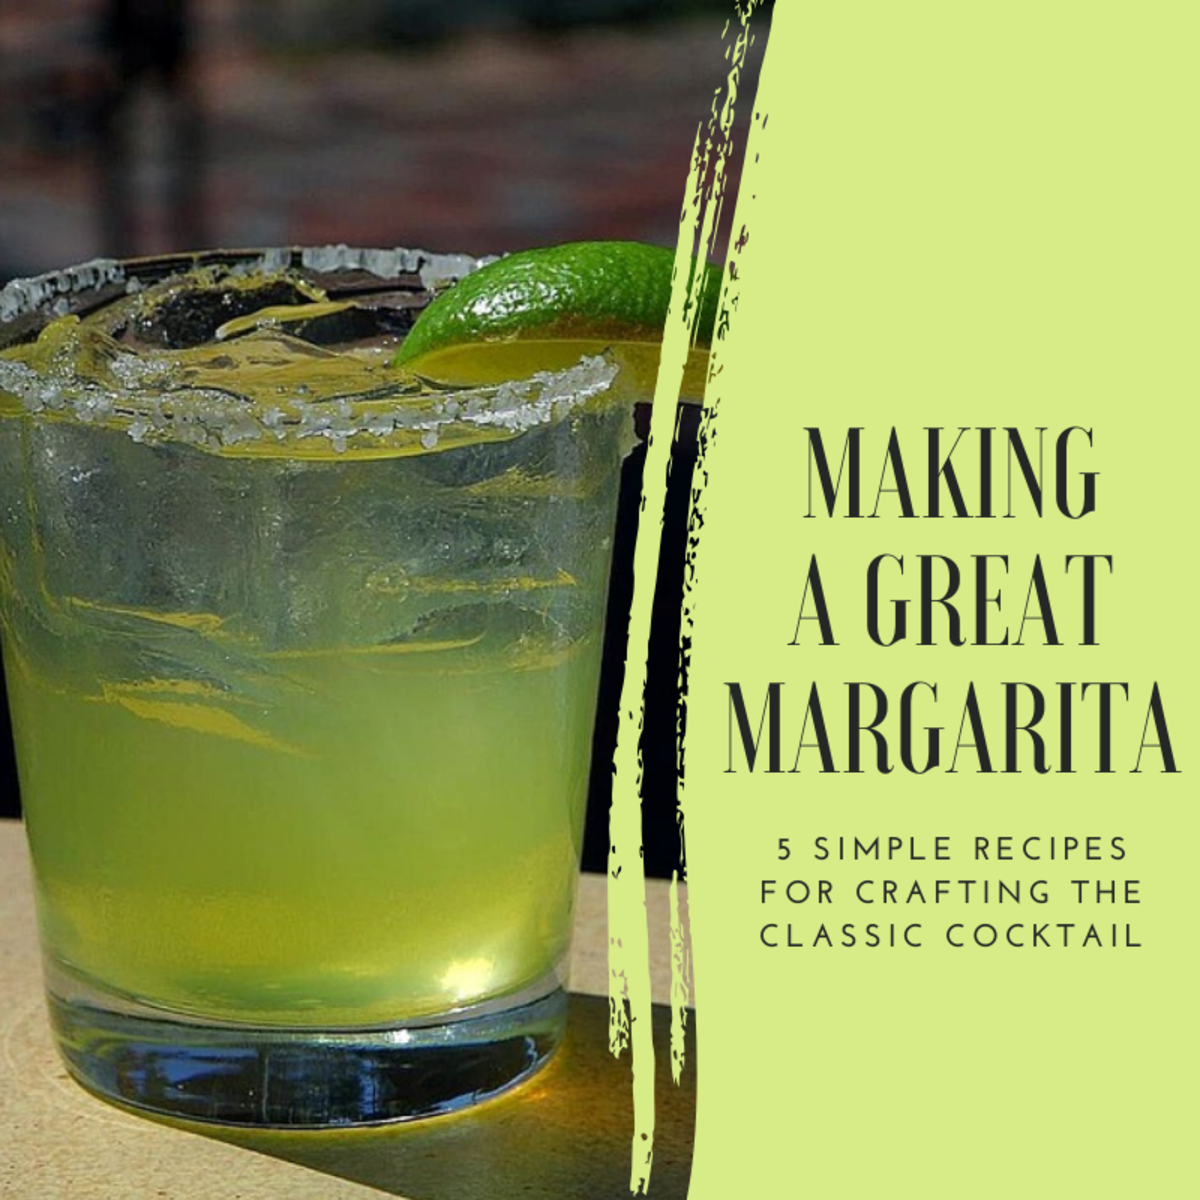 This article will provide five different recipes for making a refreshing, tasty margarita.